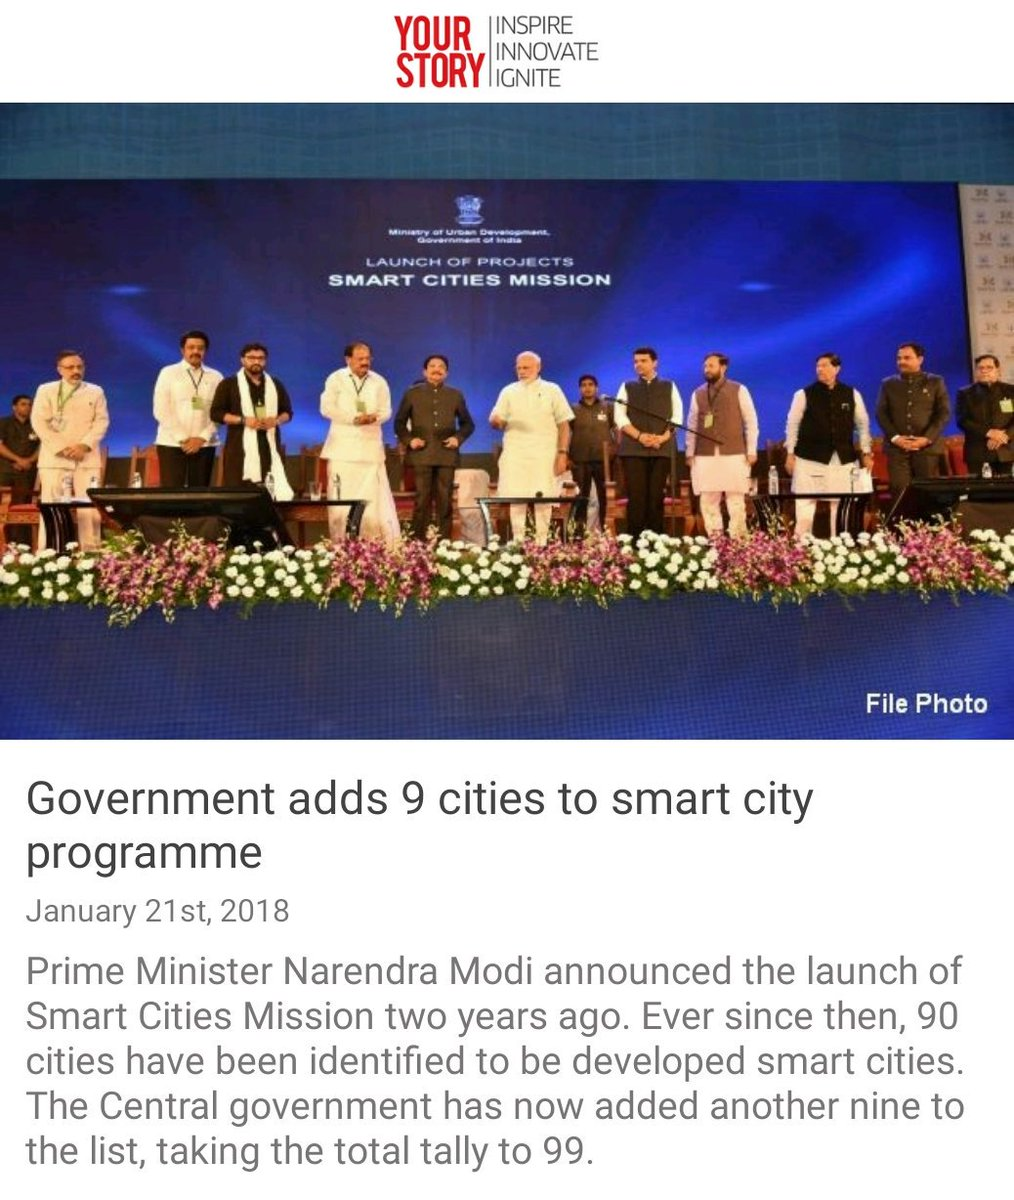 Government adds 9 cities to smart city programme.  https://t.co/vB3iN1rW4y via NMApp https://t.co/ZveQqsmjD5